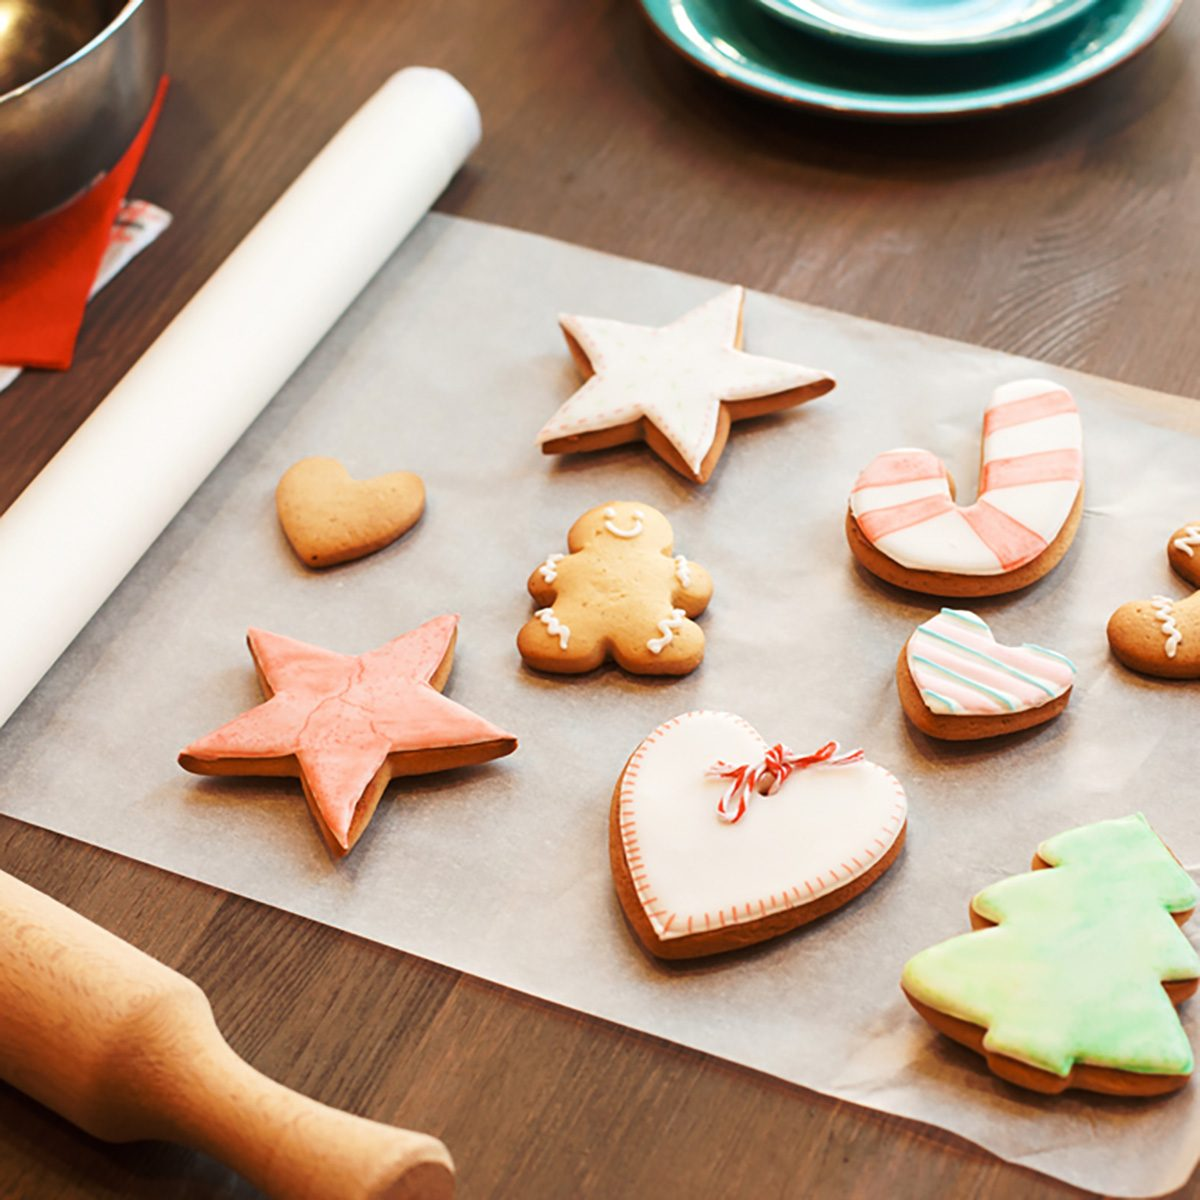 Colorful gingerbread cookies on culinary parchment.